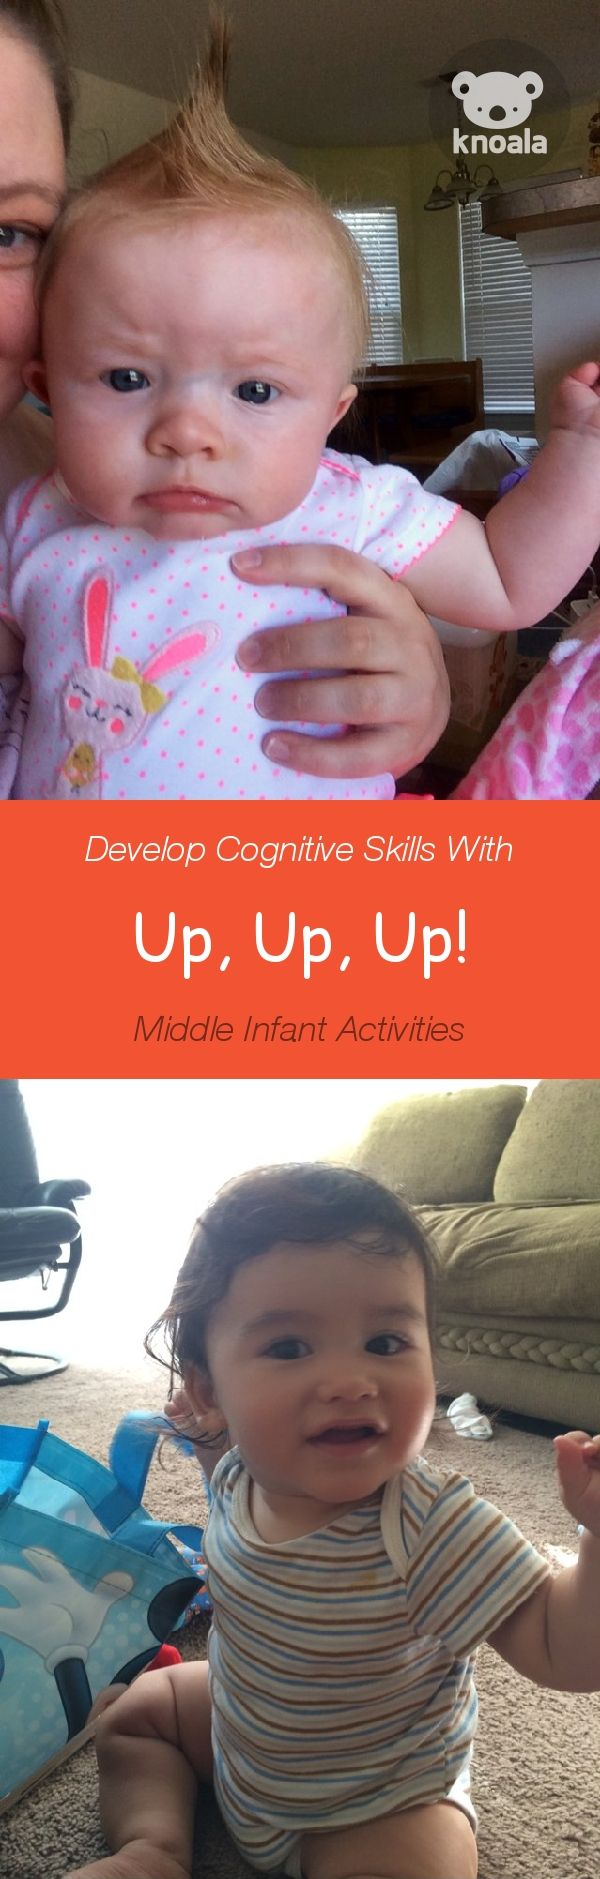 #Knoala Middle Infant activity 'Up, Up, Up!' helps little ones develop Cognitive, Motor and Language skills. Click for simple instructions  1000s more fun, easy, no-prep activities for kids ages 0-5! #activities #DIY